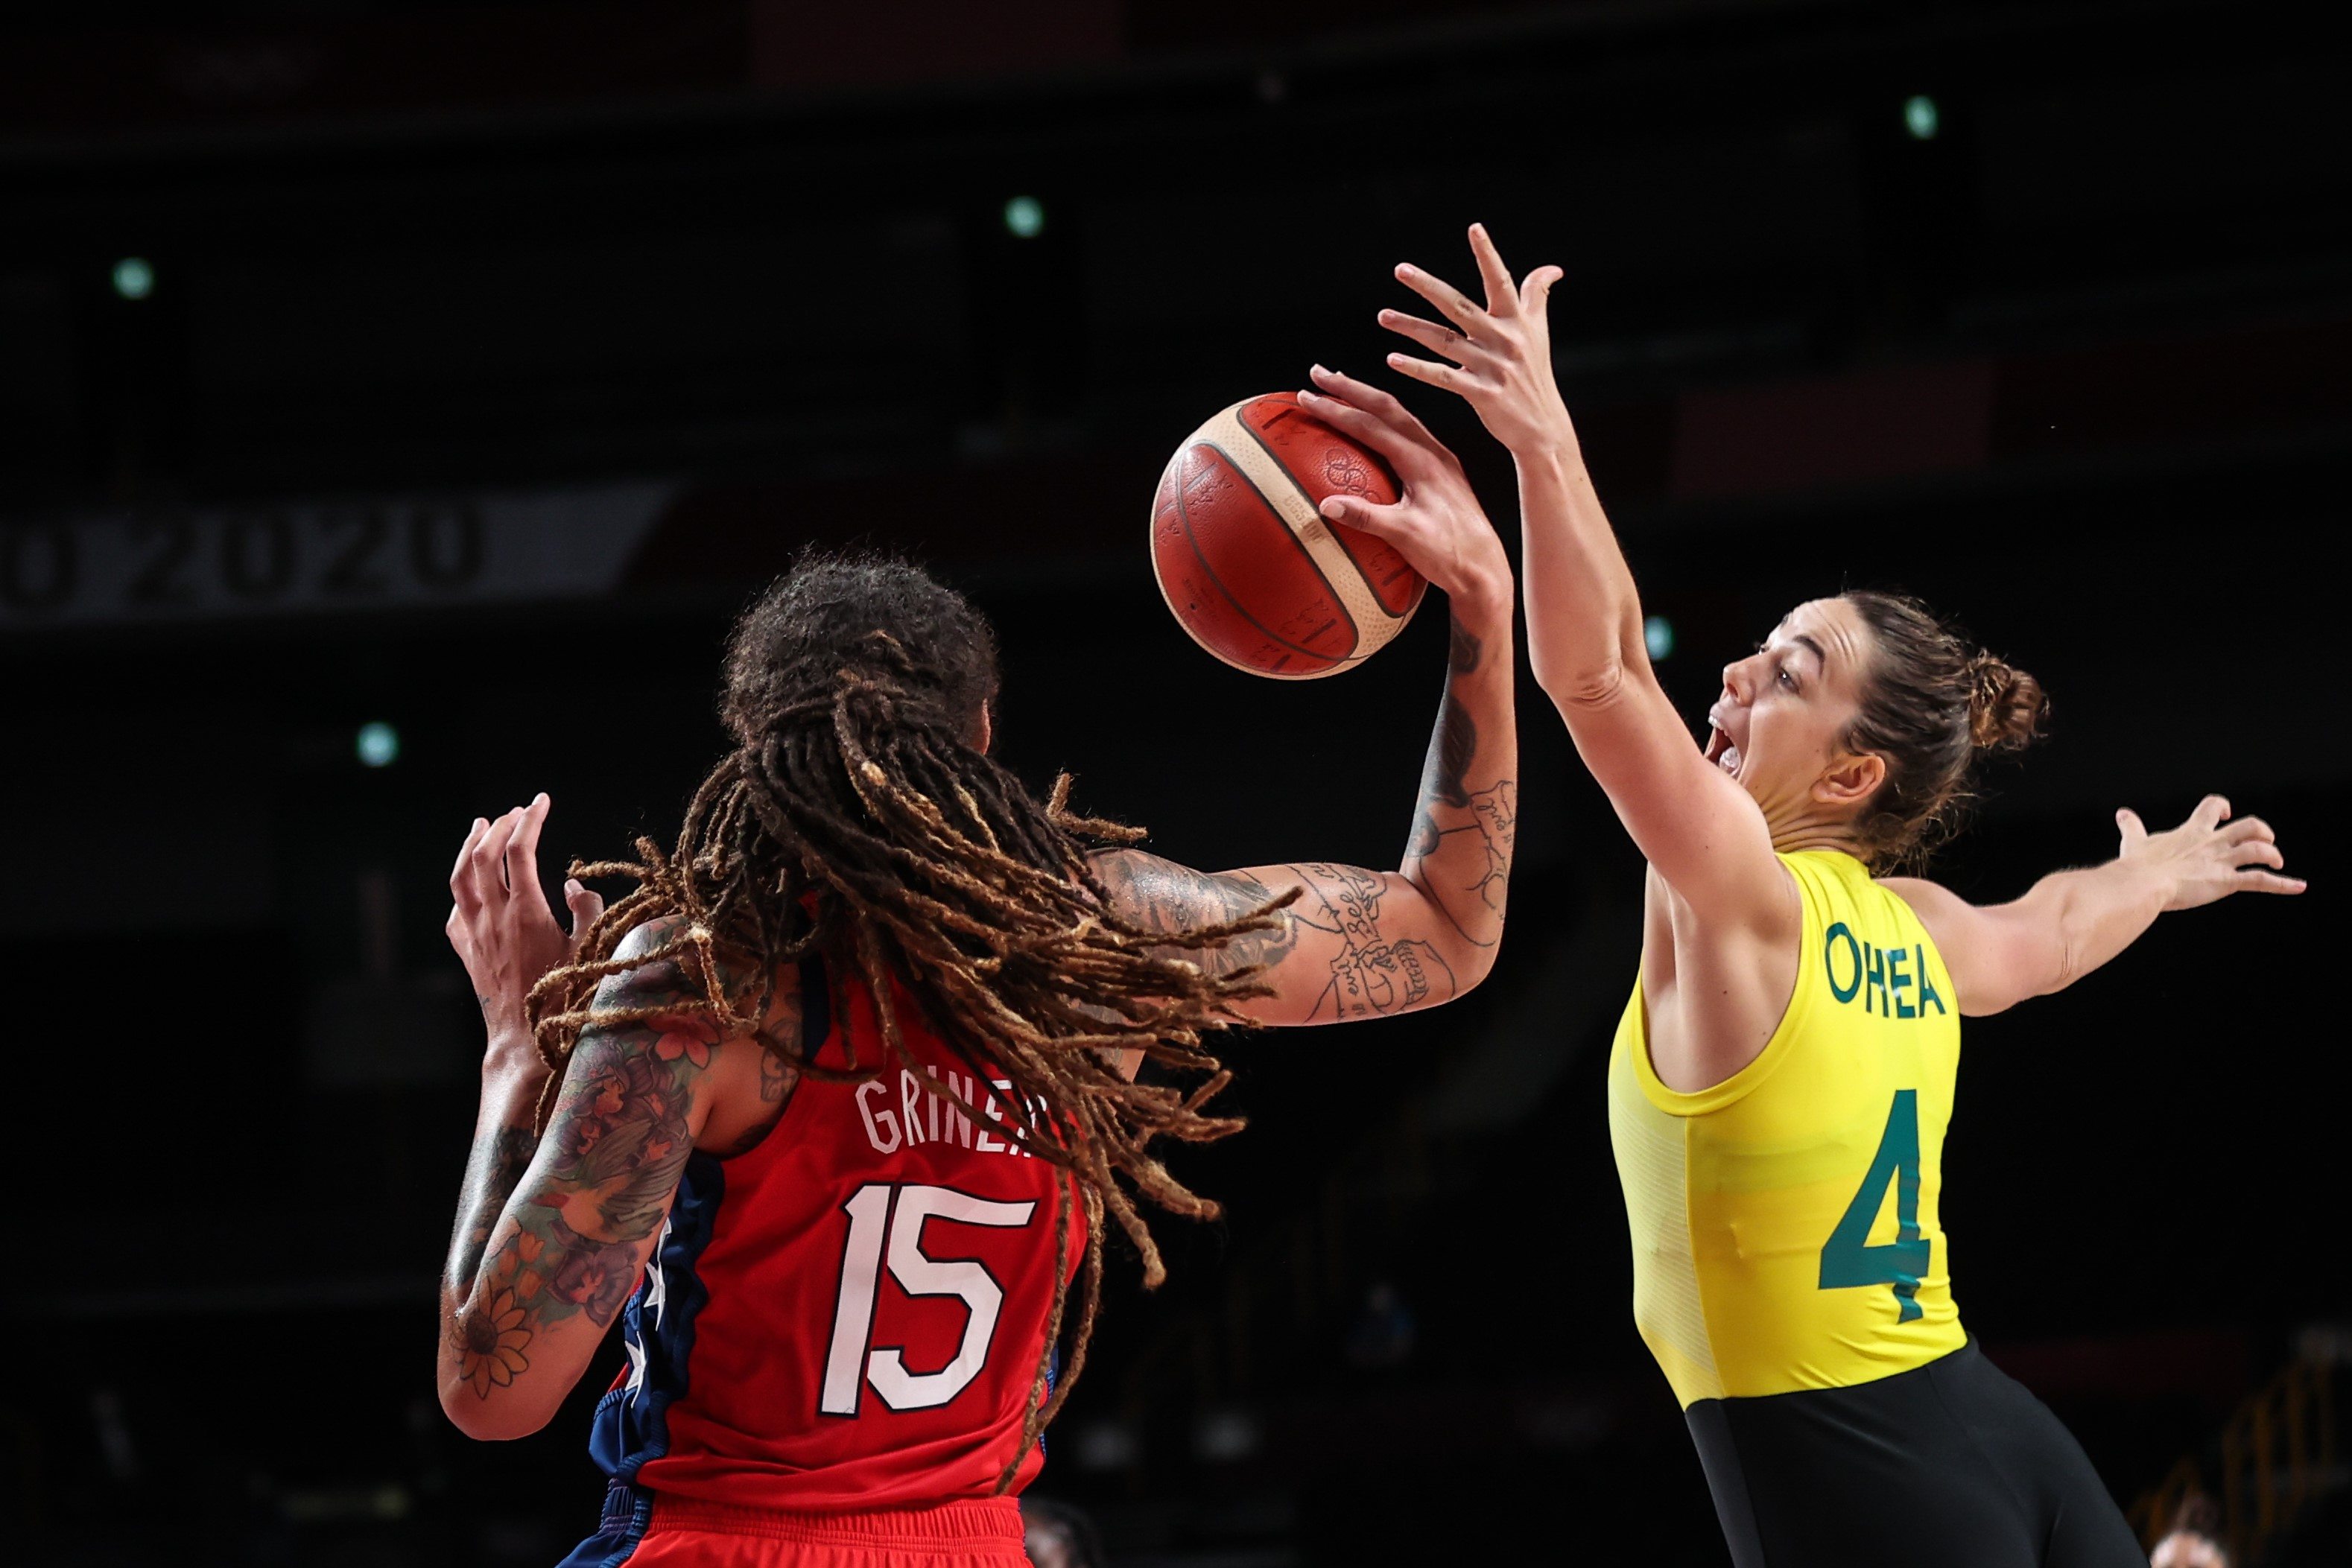 Brittney Griner L of the United States competes with Jenna O'Hea of Australia during the women's basketball quarterfinal between the United States and Australia at the Tokyo 2020 Olympic Games in Saitama, Japan, Aug. 4, 2021.